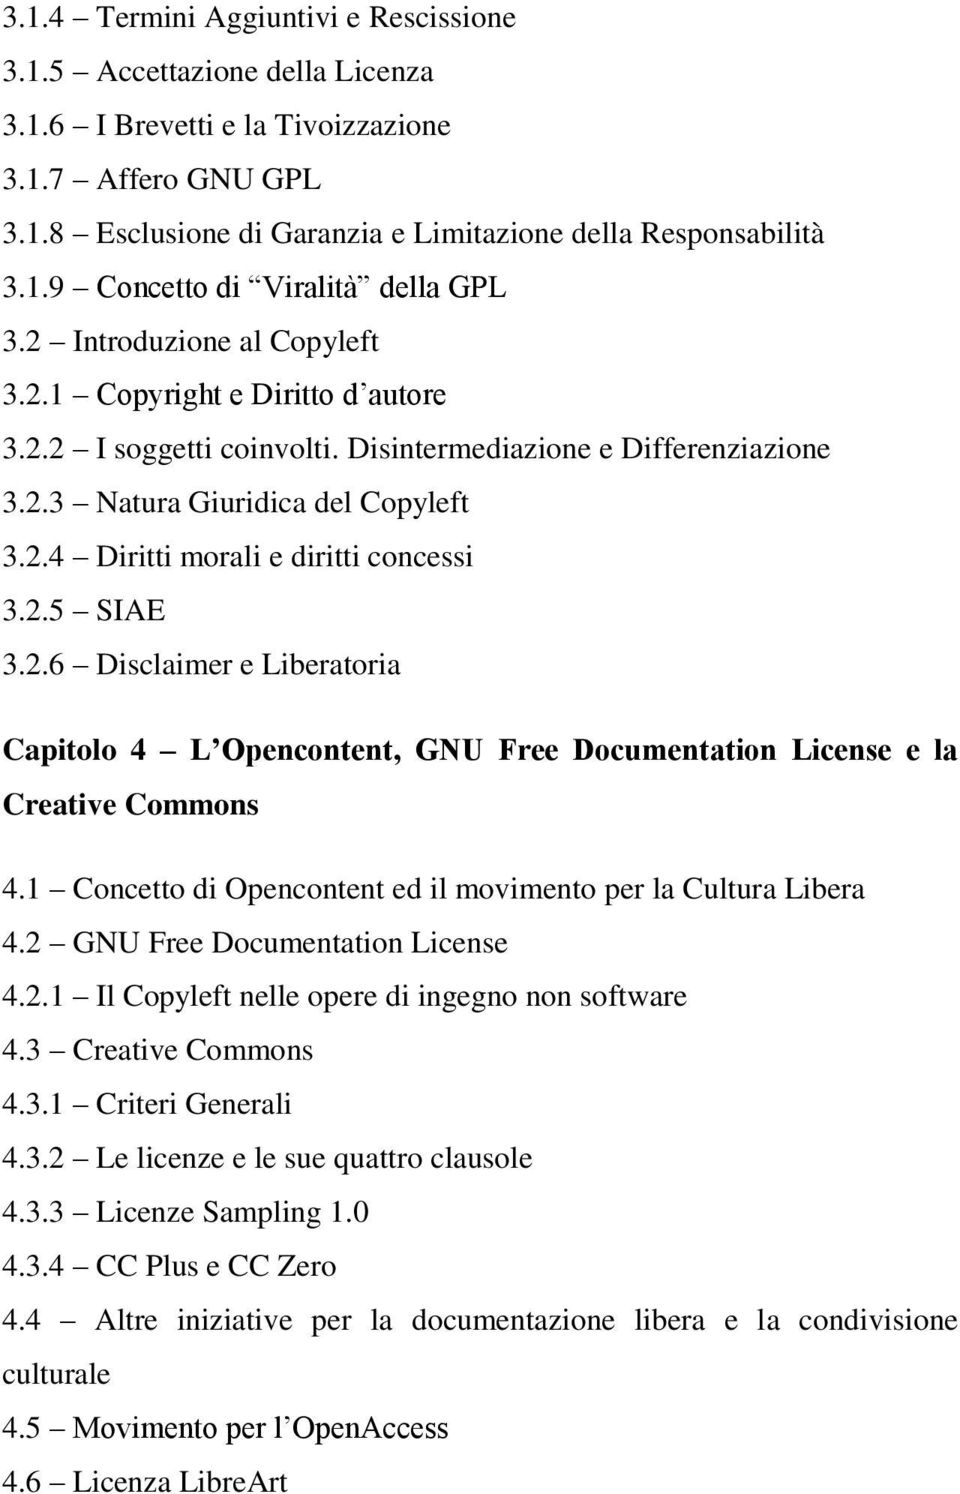 2.5 SIAE 3.2.6 Disclaimer e Liberatoria Capitolo 4 L Opencontent, GNU Free Documentation License e la Creative Commons 4.1 Concetto di Opencontent ed il movimento per la Cultura Libera 4.